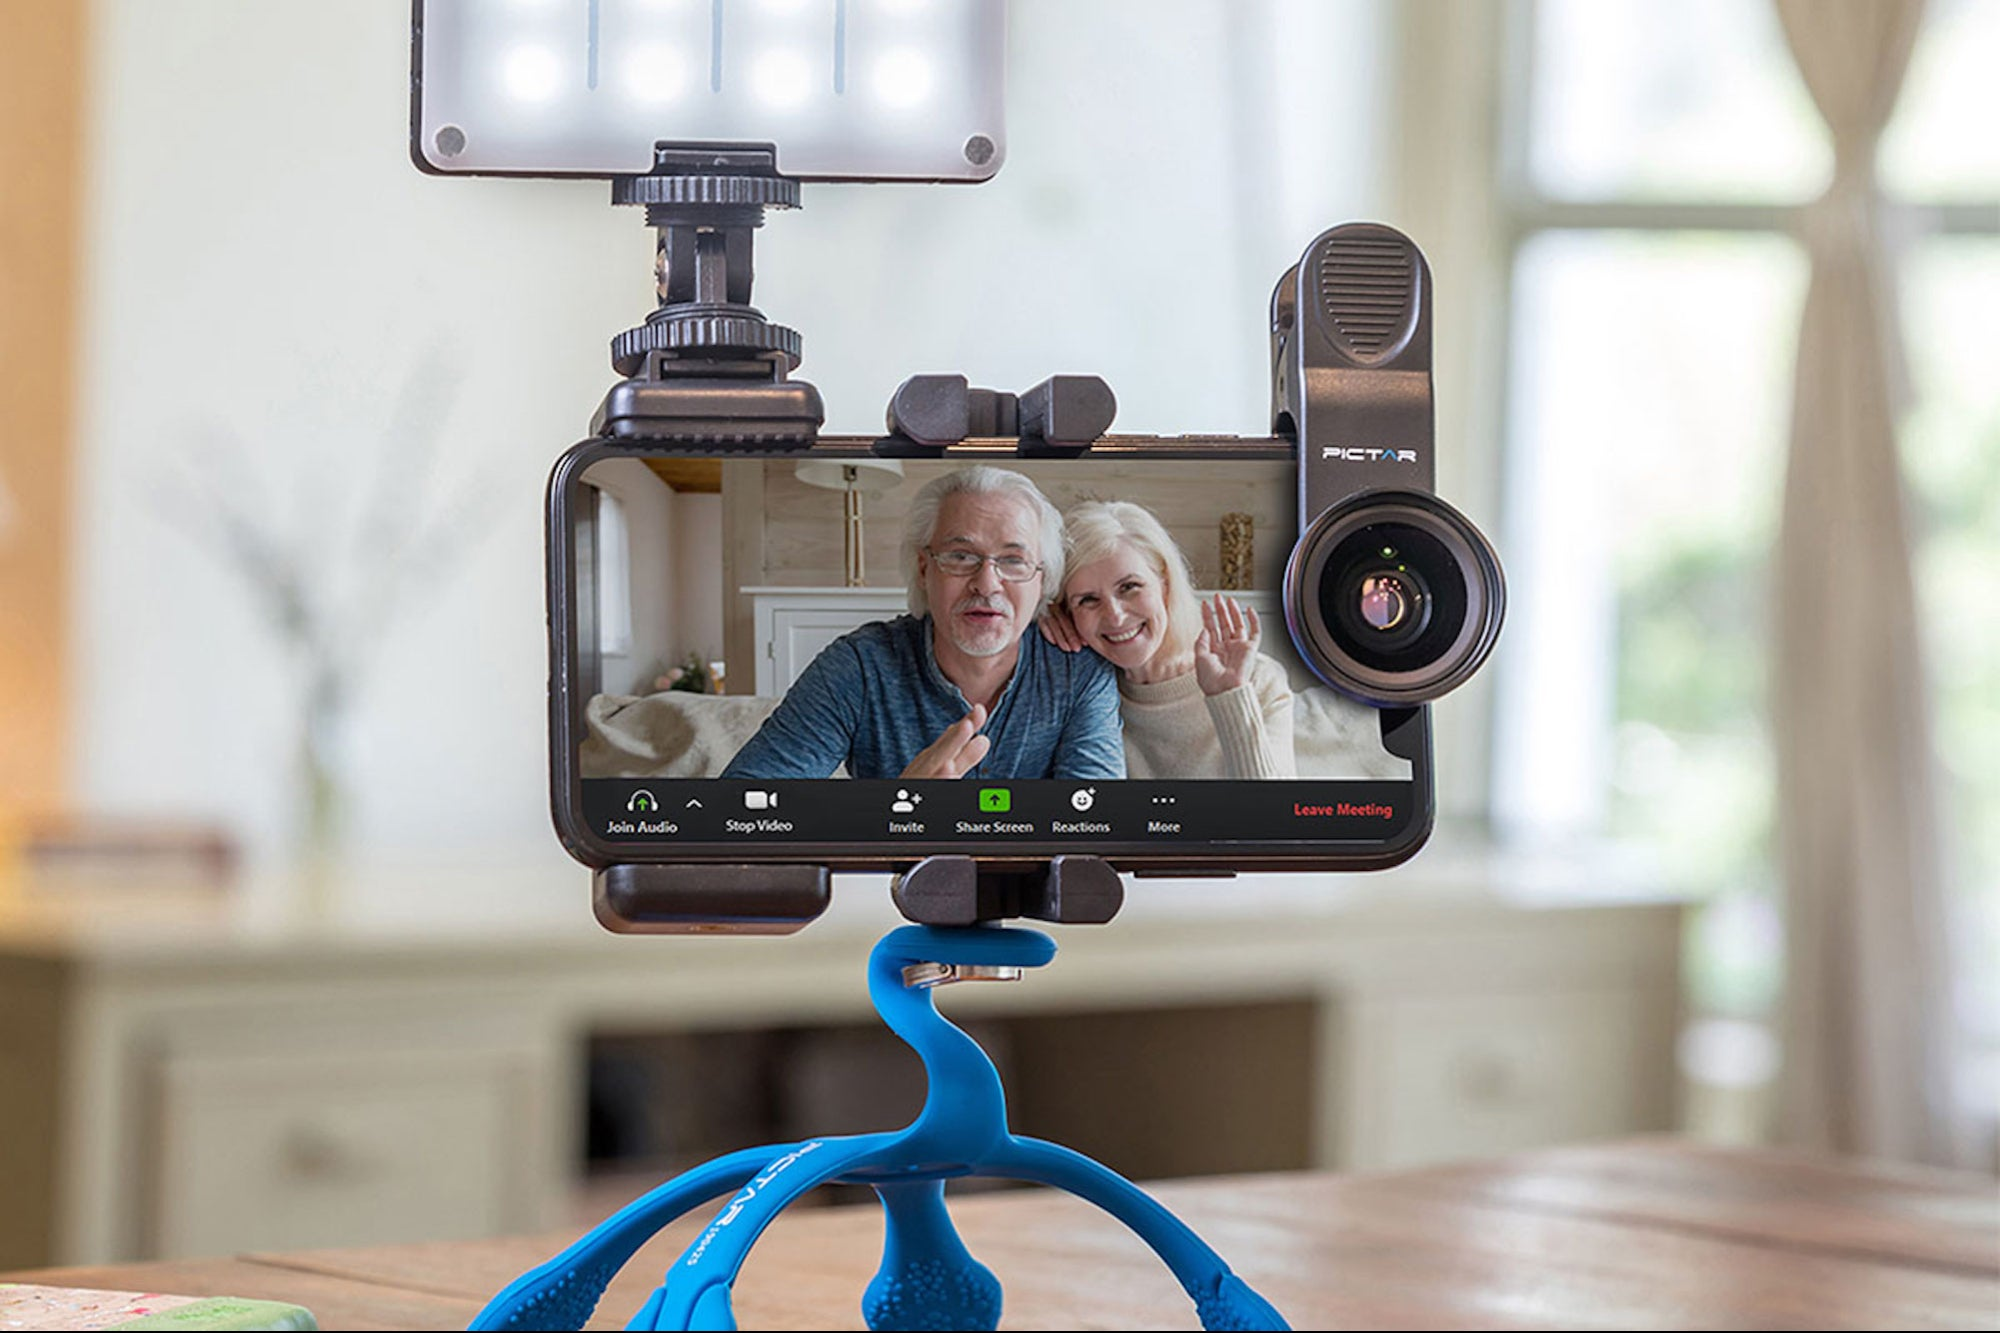 This Smartphone Video Kit Puts a Professional Spin on Your Zoom Calls and Webinars